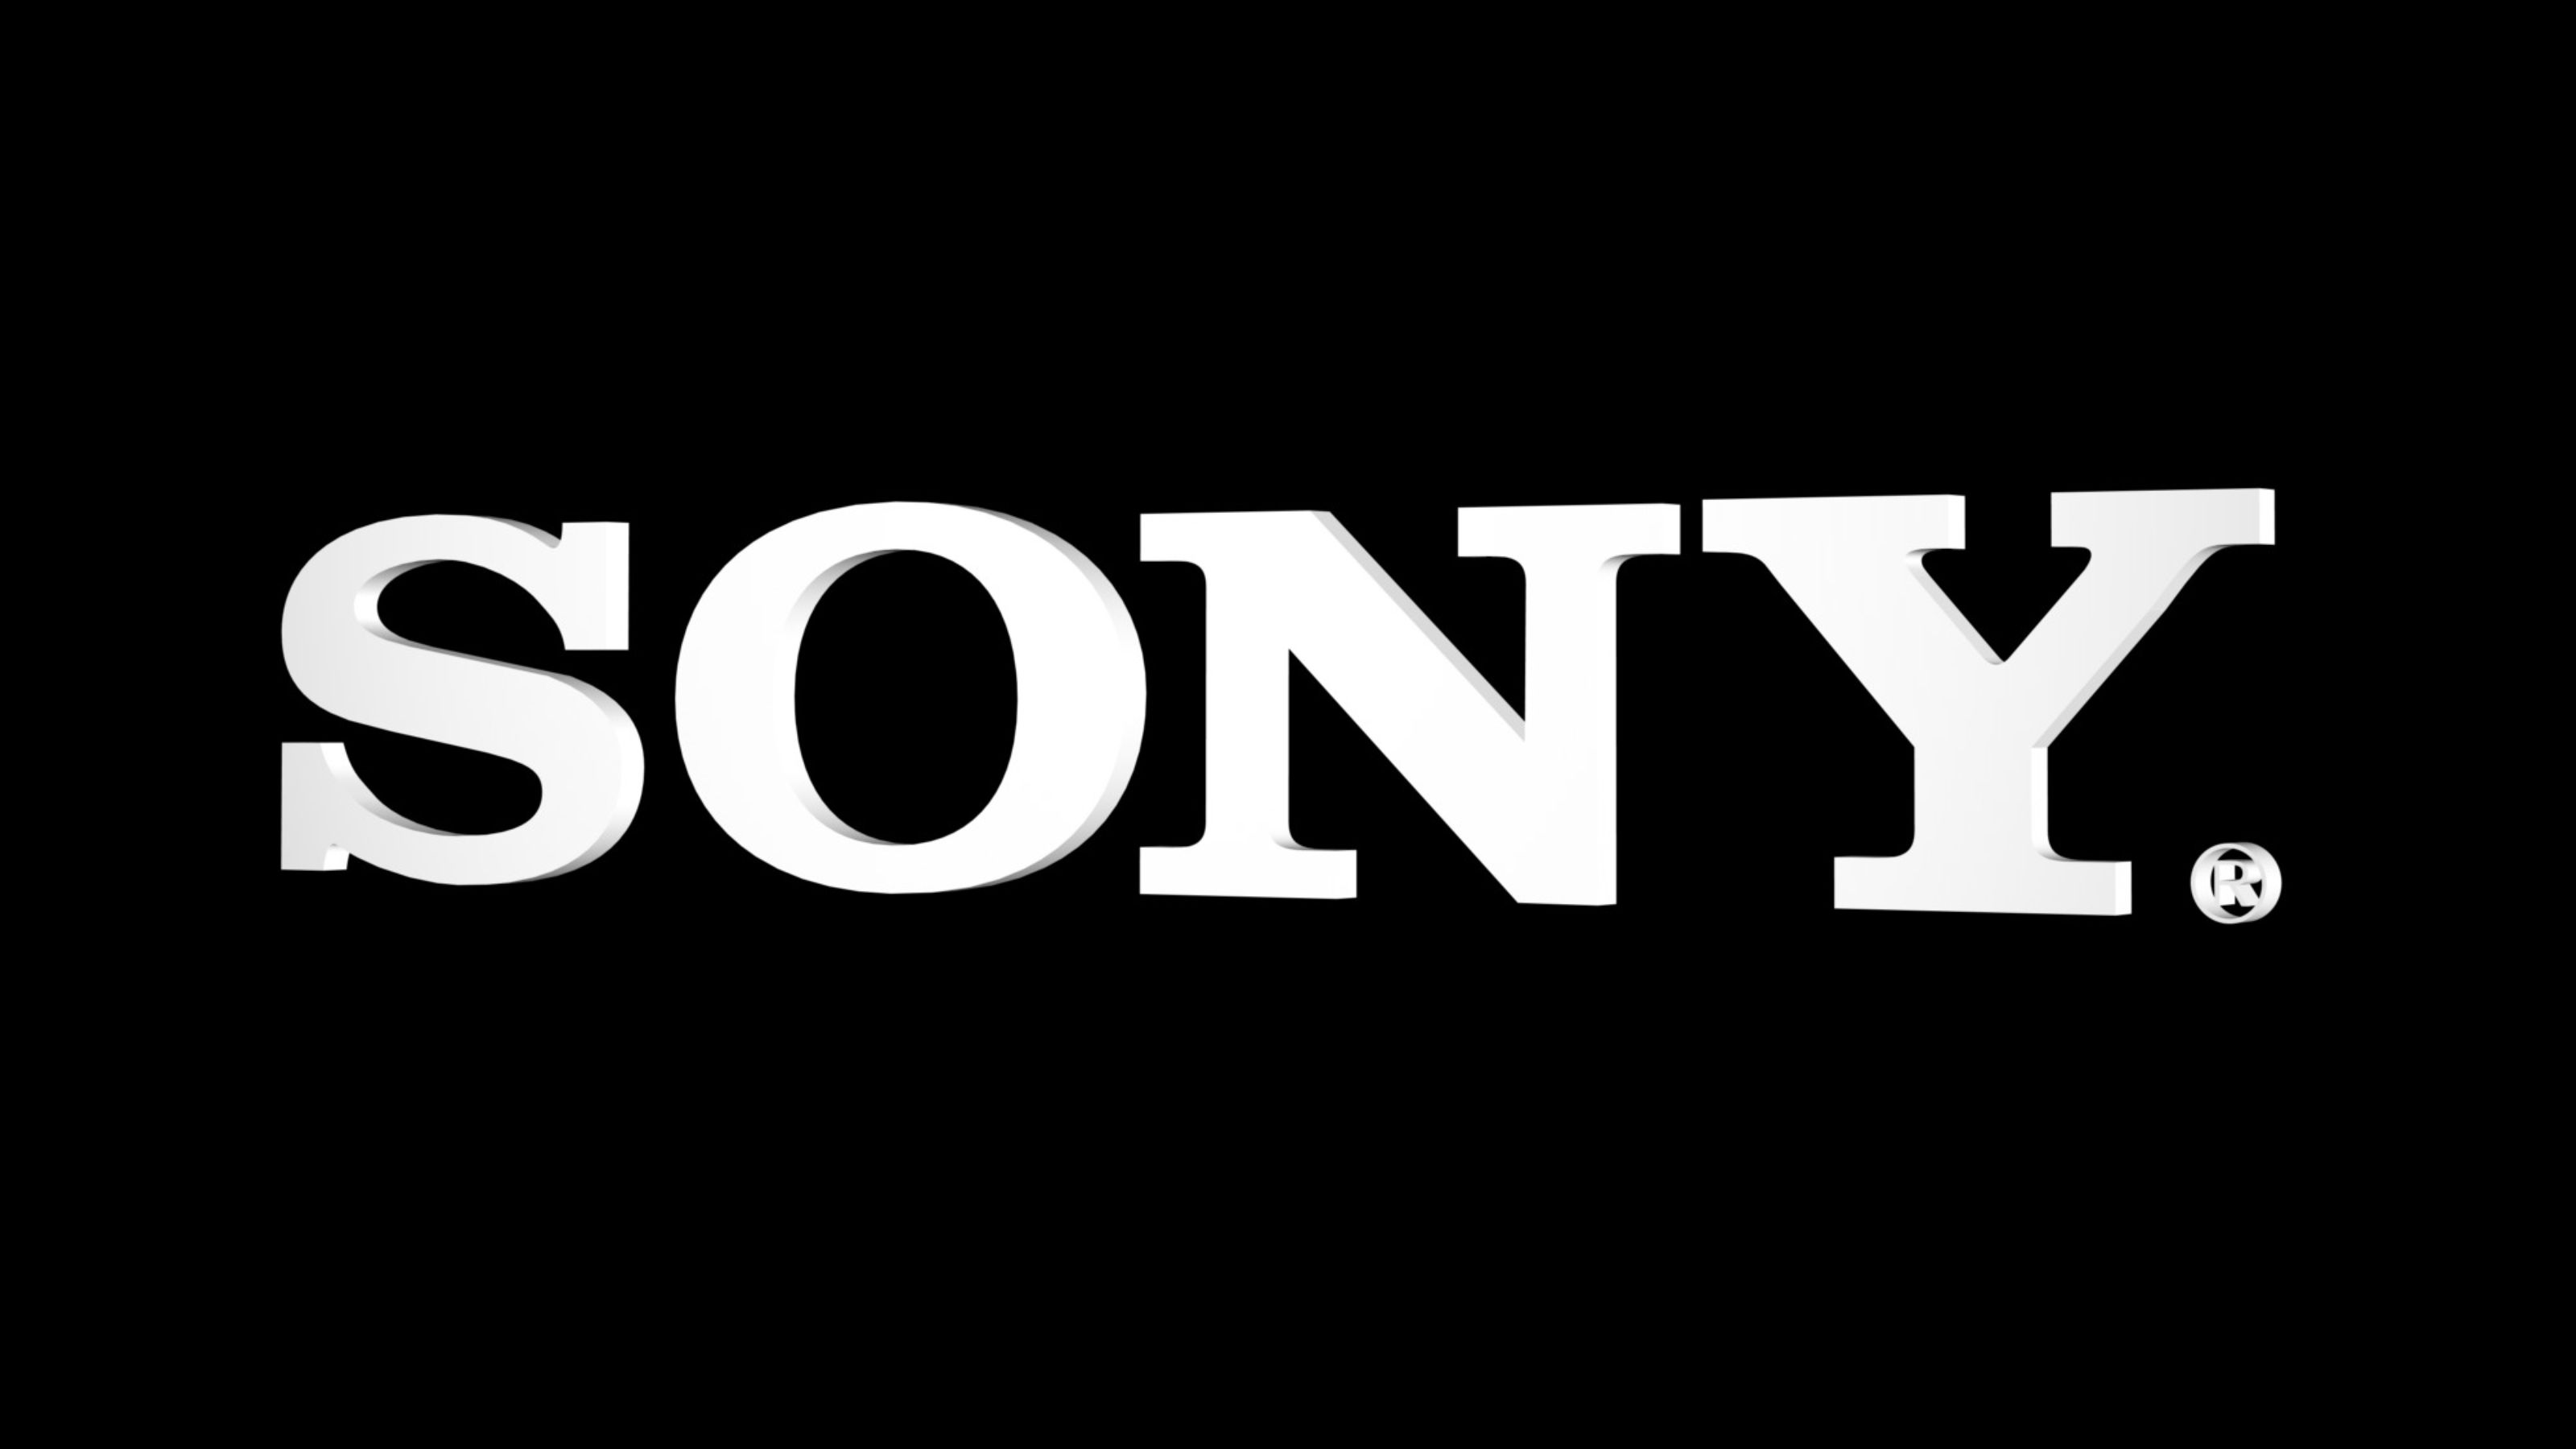 Sony Logos Full Hd Pictures